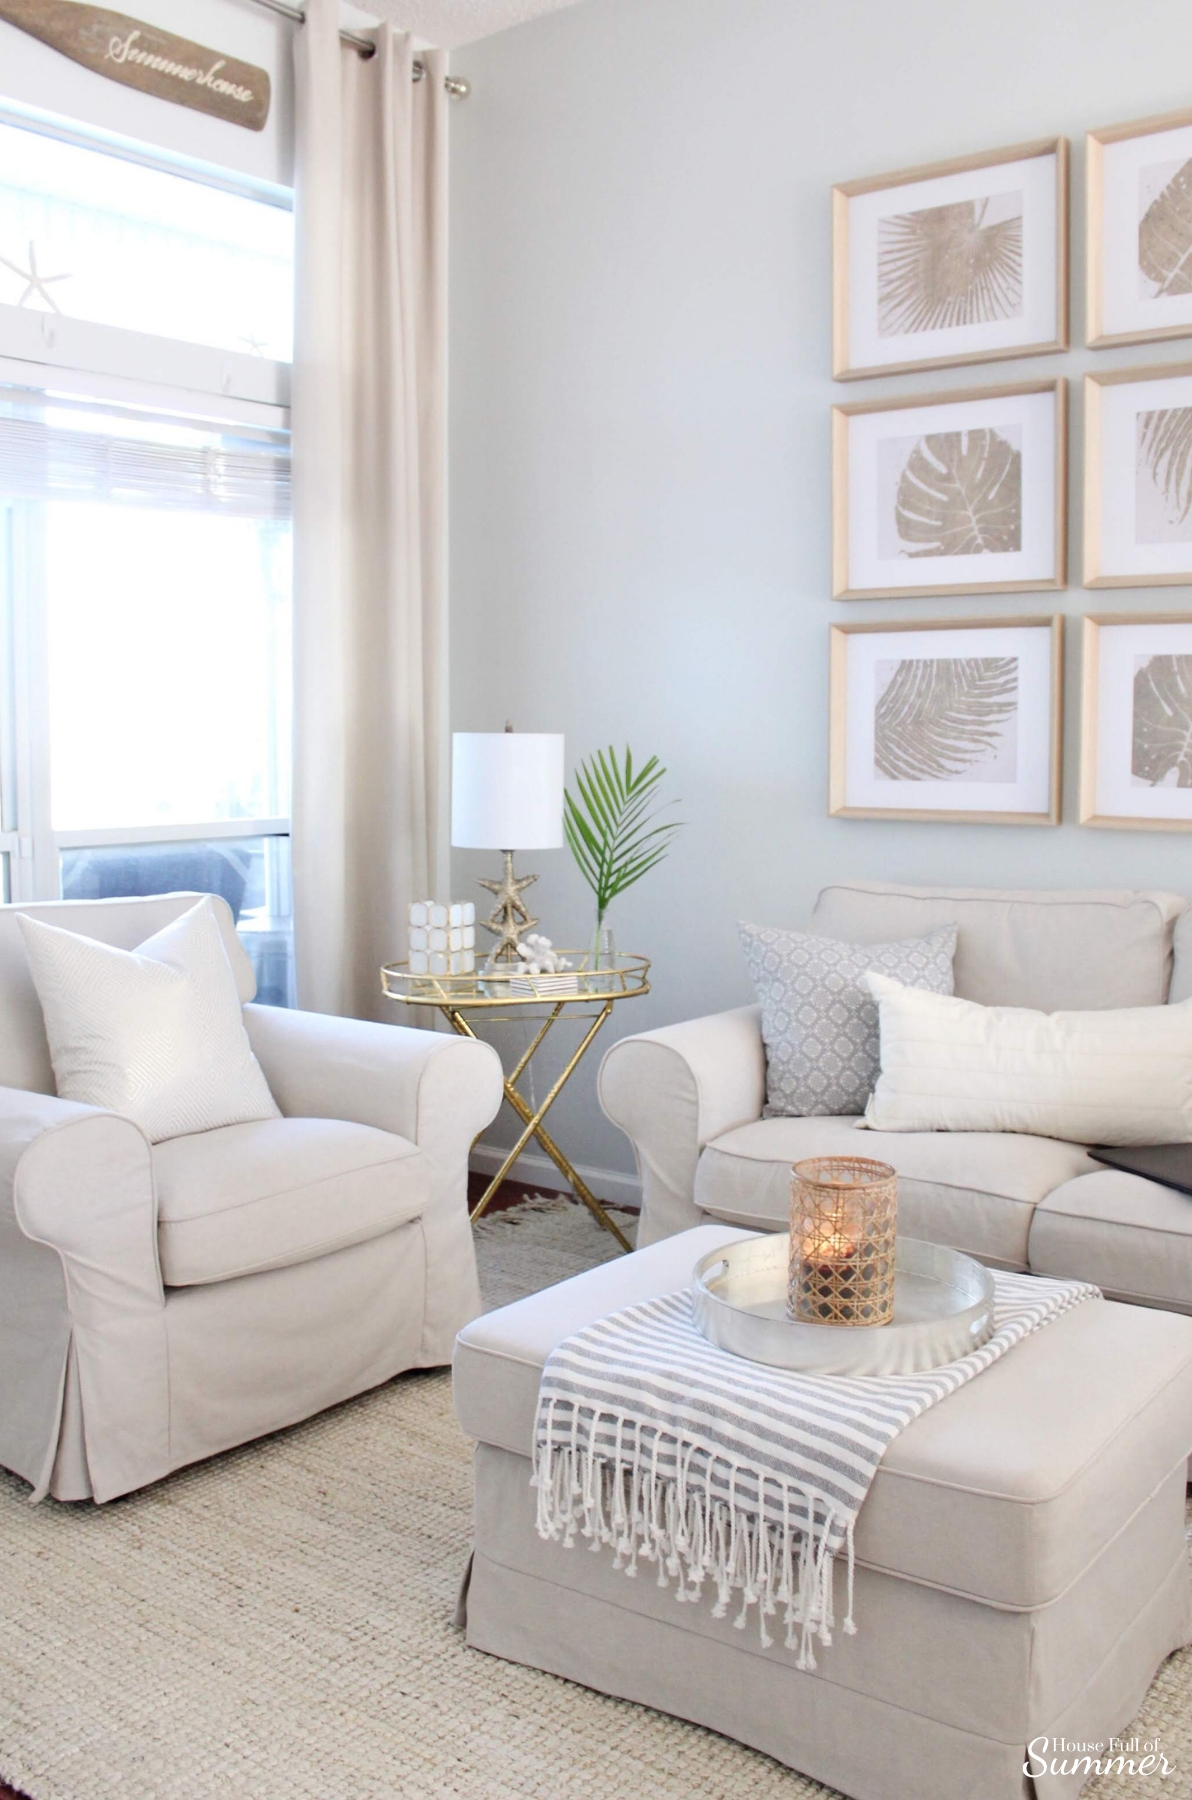 Styling My Coastal Living Room for Winter — House Full of Summer